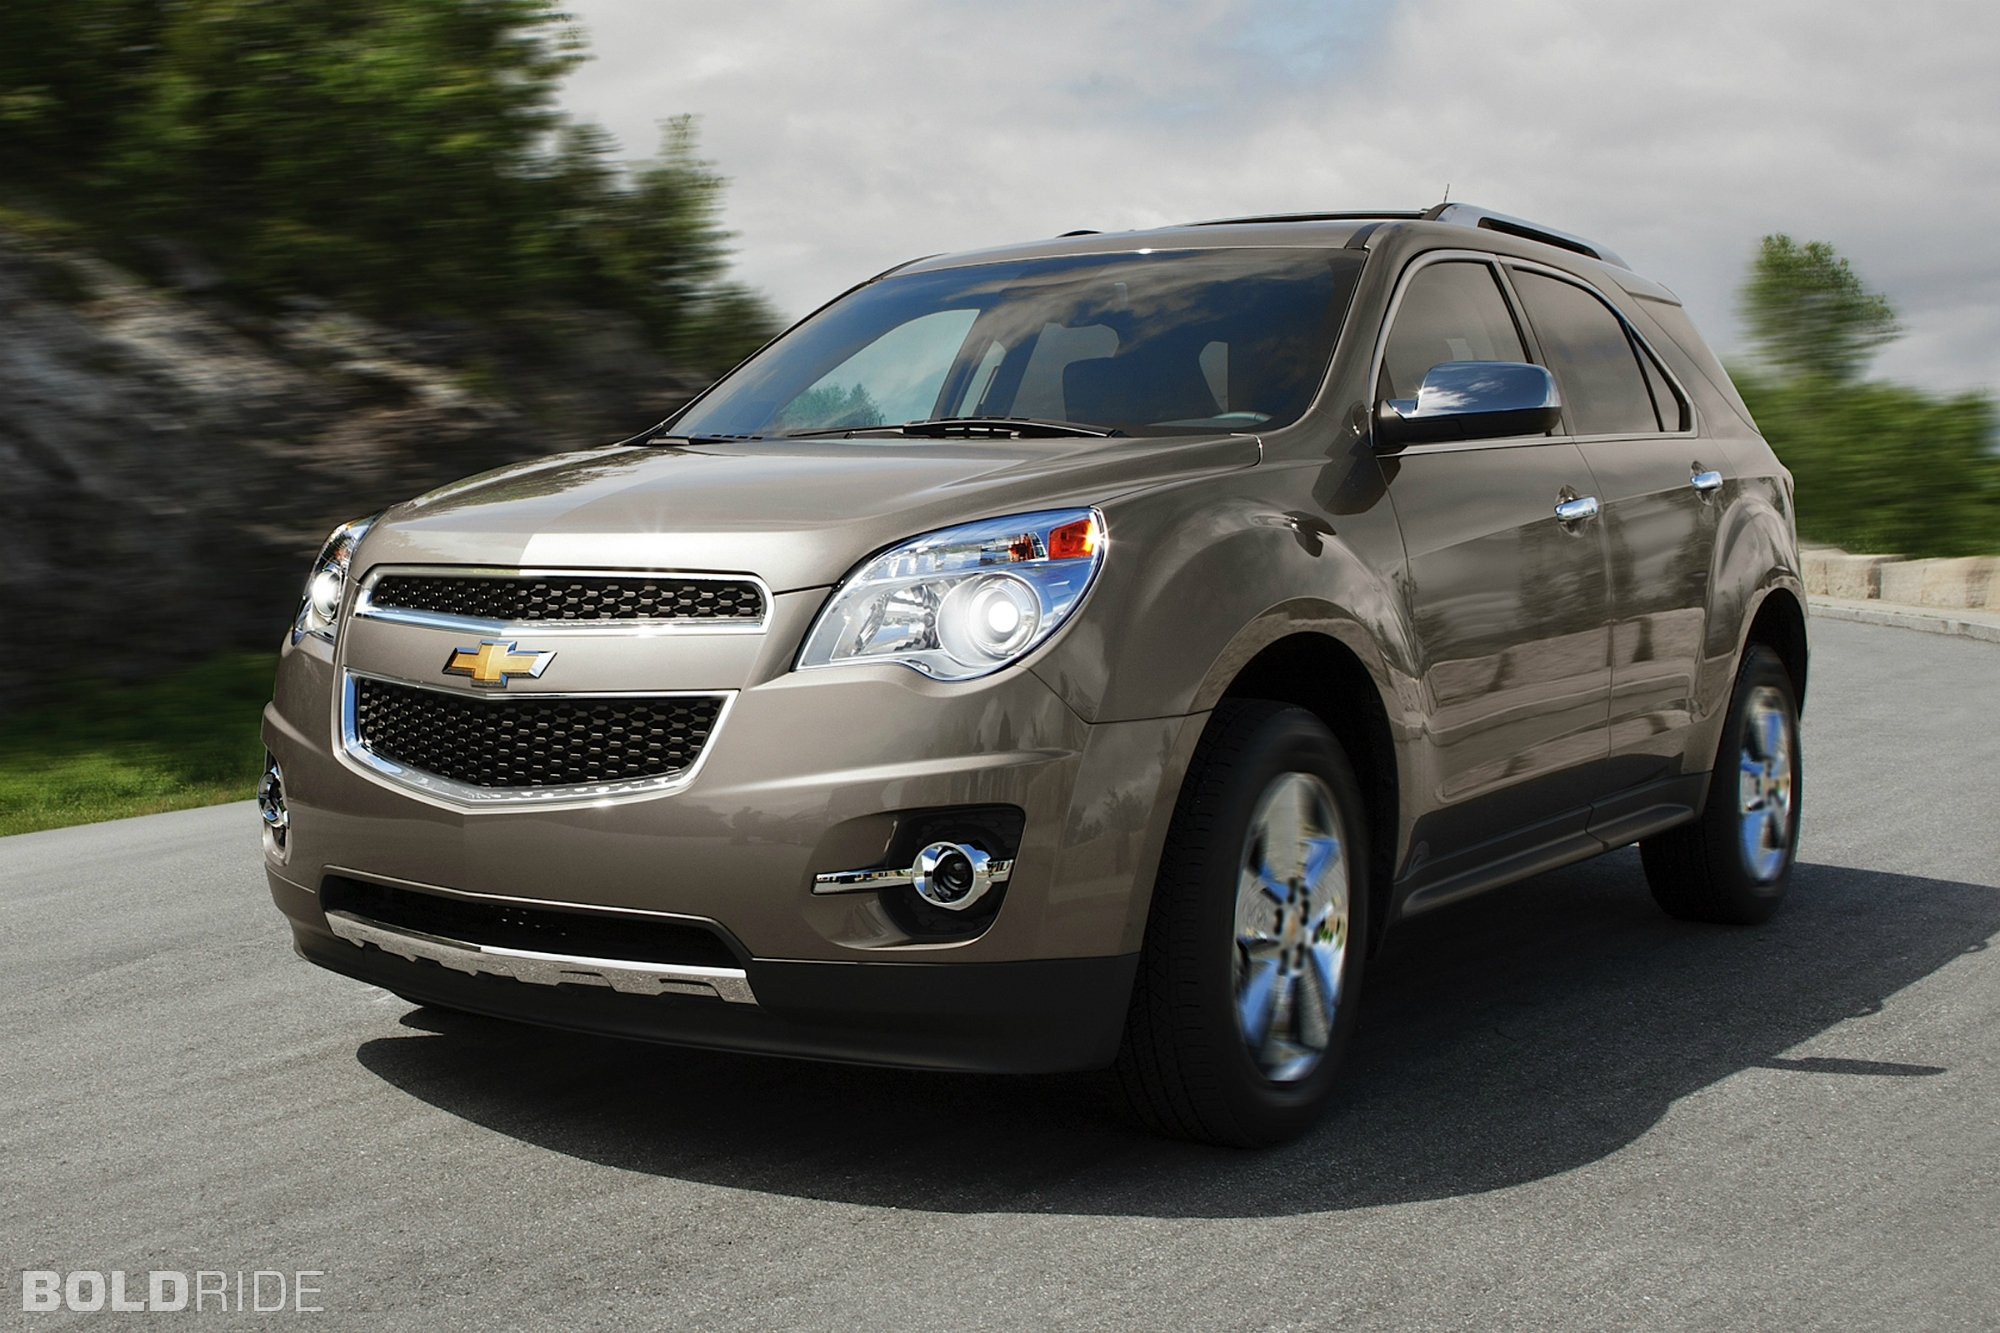 2012 chevrolet equinox image 13. Black Bedroom Furniture Sets. Home Design Ideas